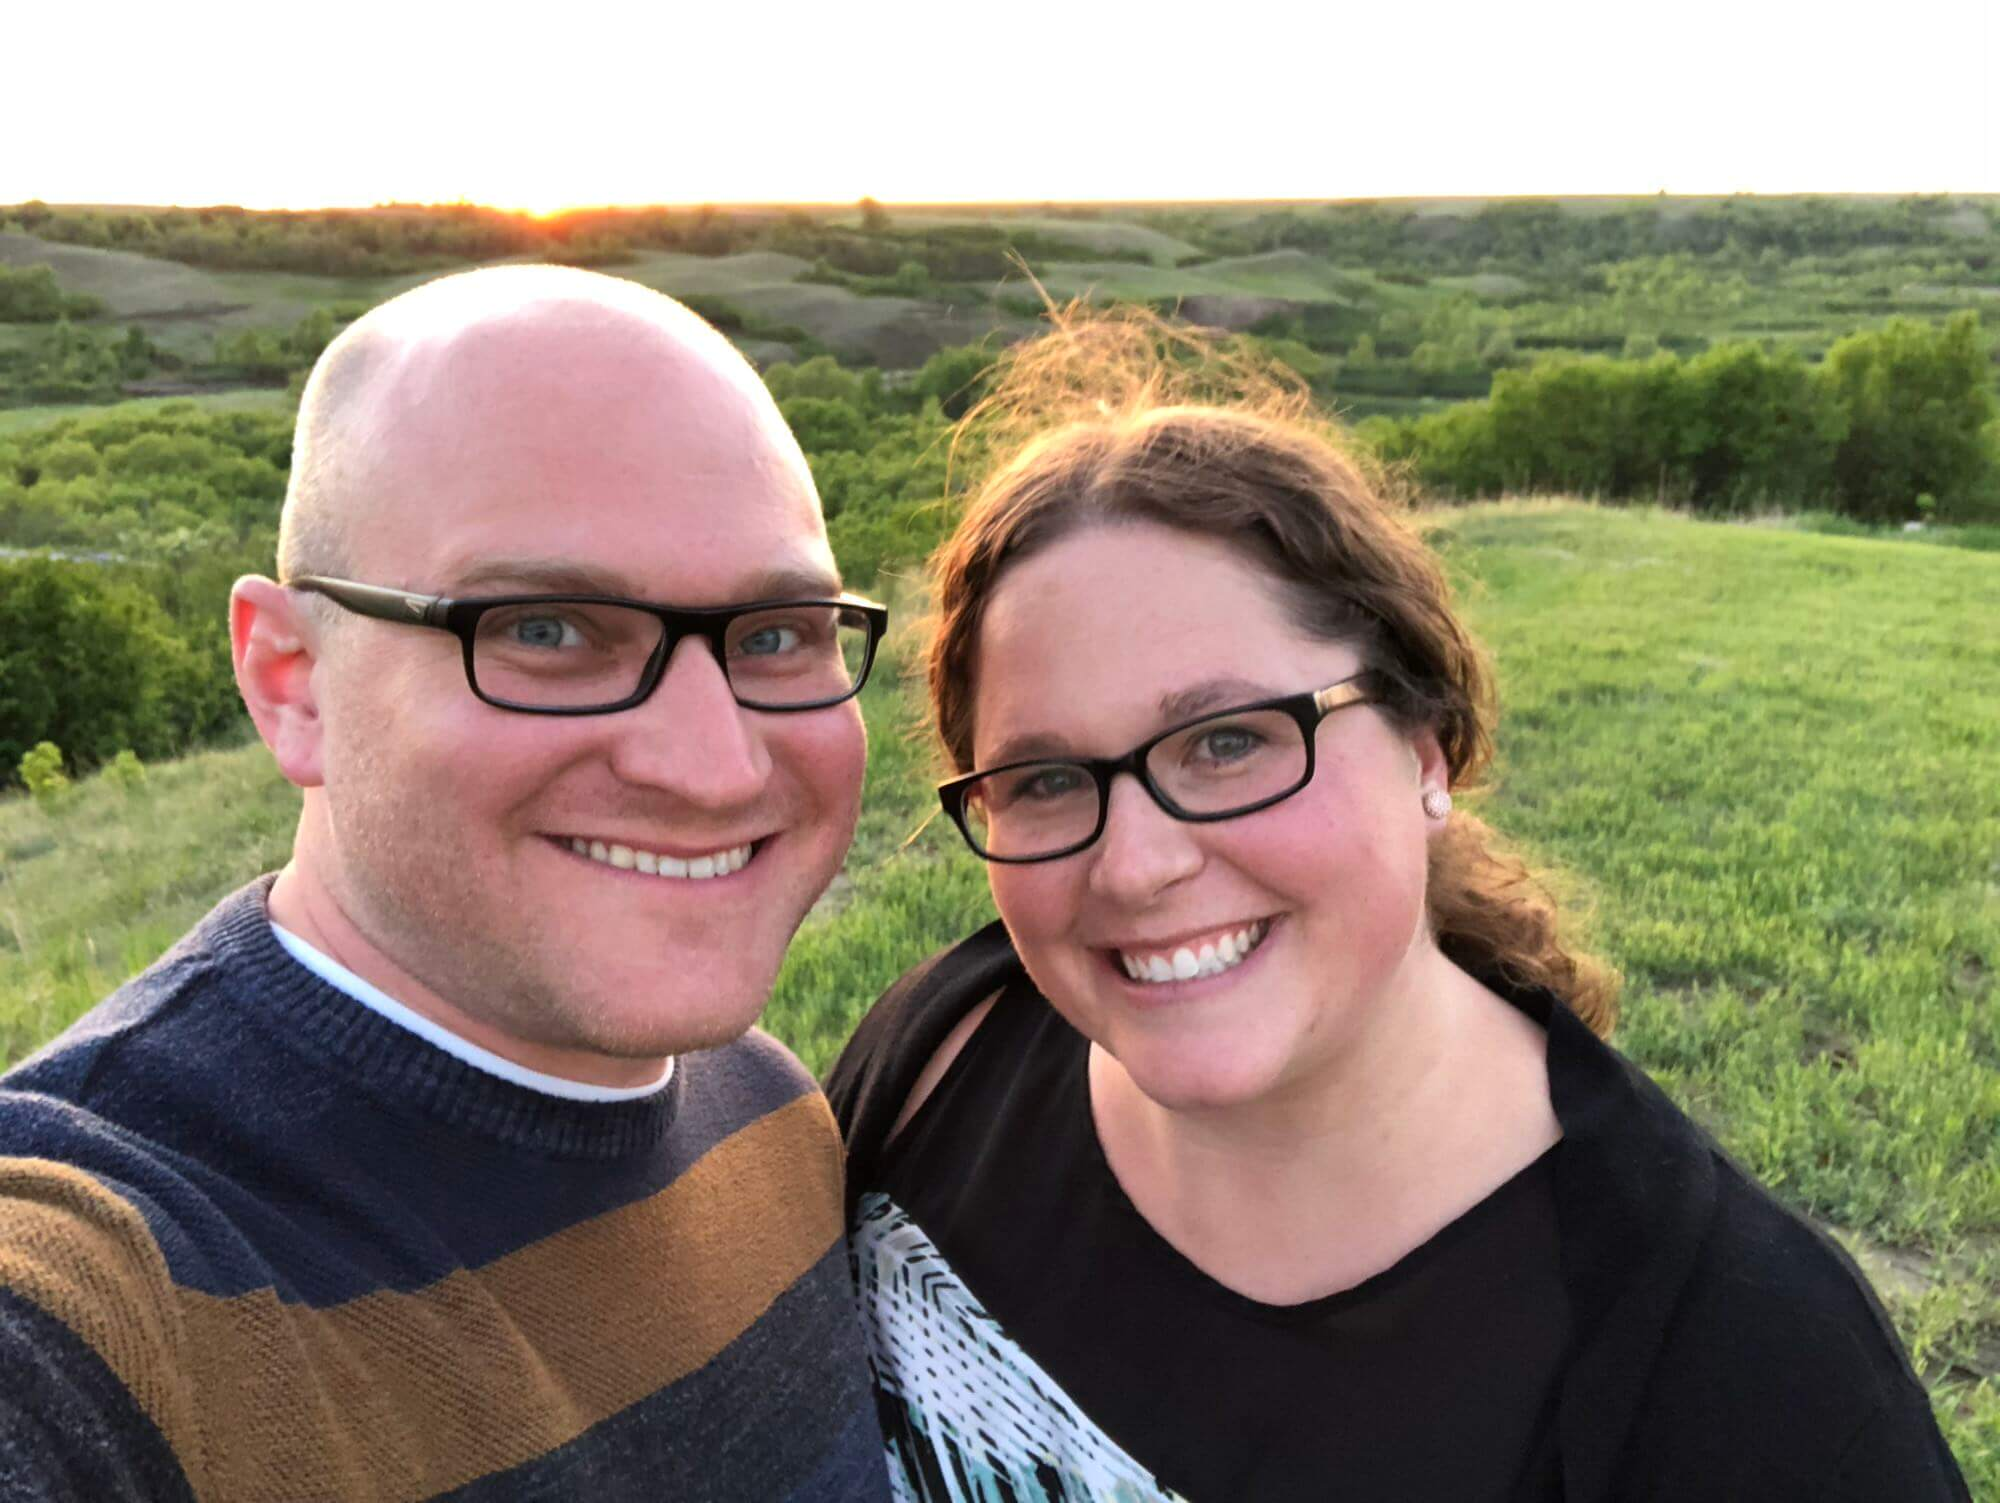 Date Night at Over the Hill Orchard